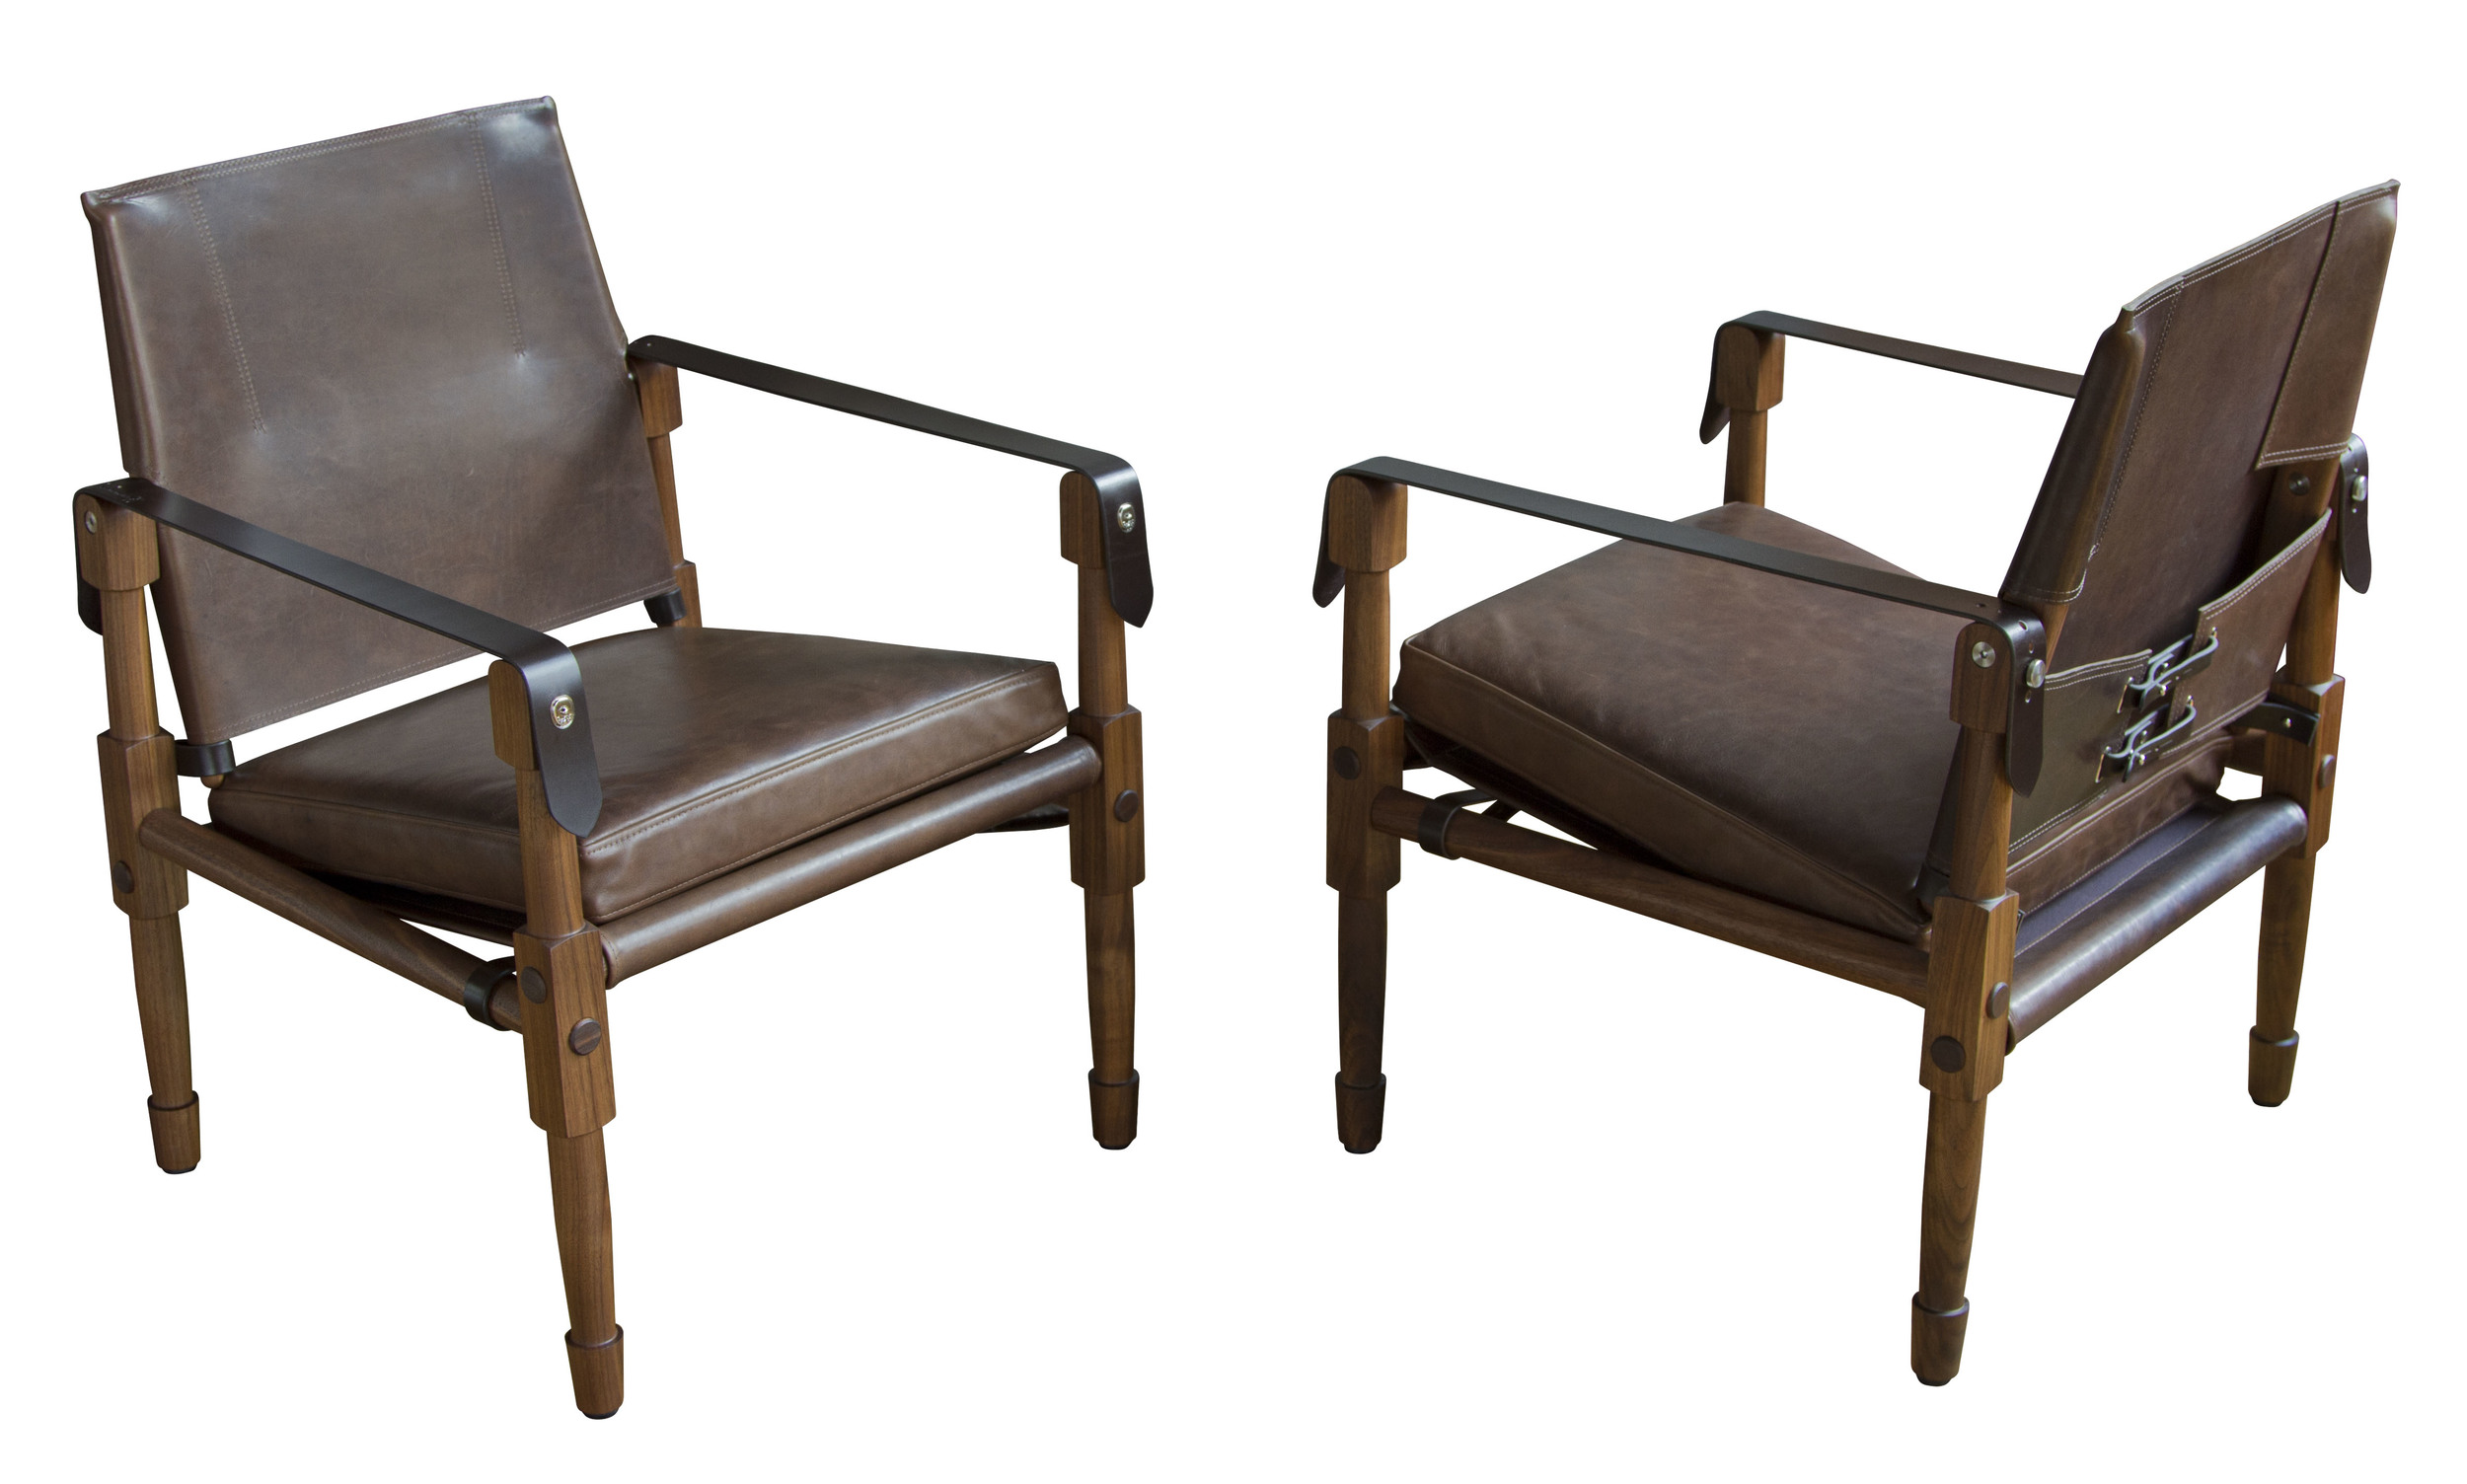 Oiled walnut with Domaine: Brentwood upholstery and dark chocolate English bridle leather  13